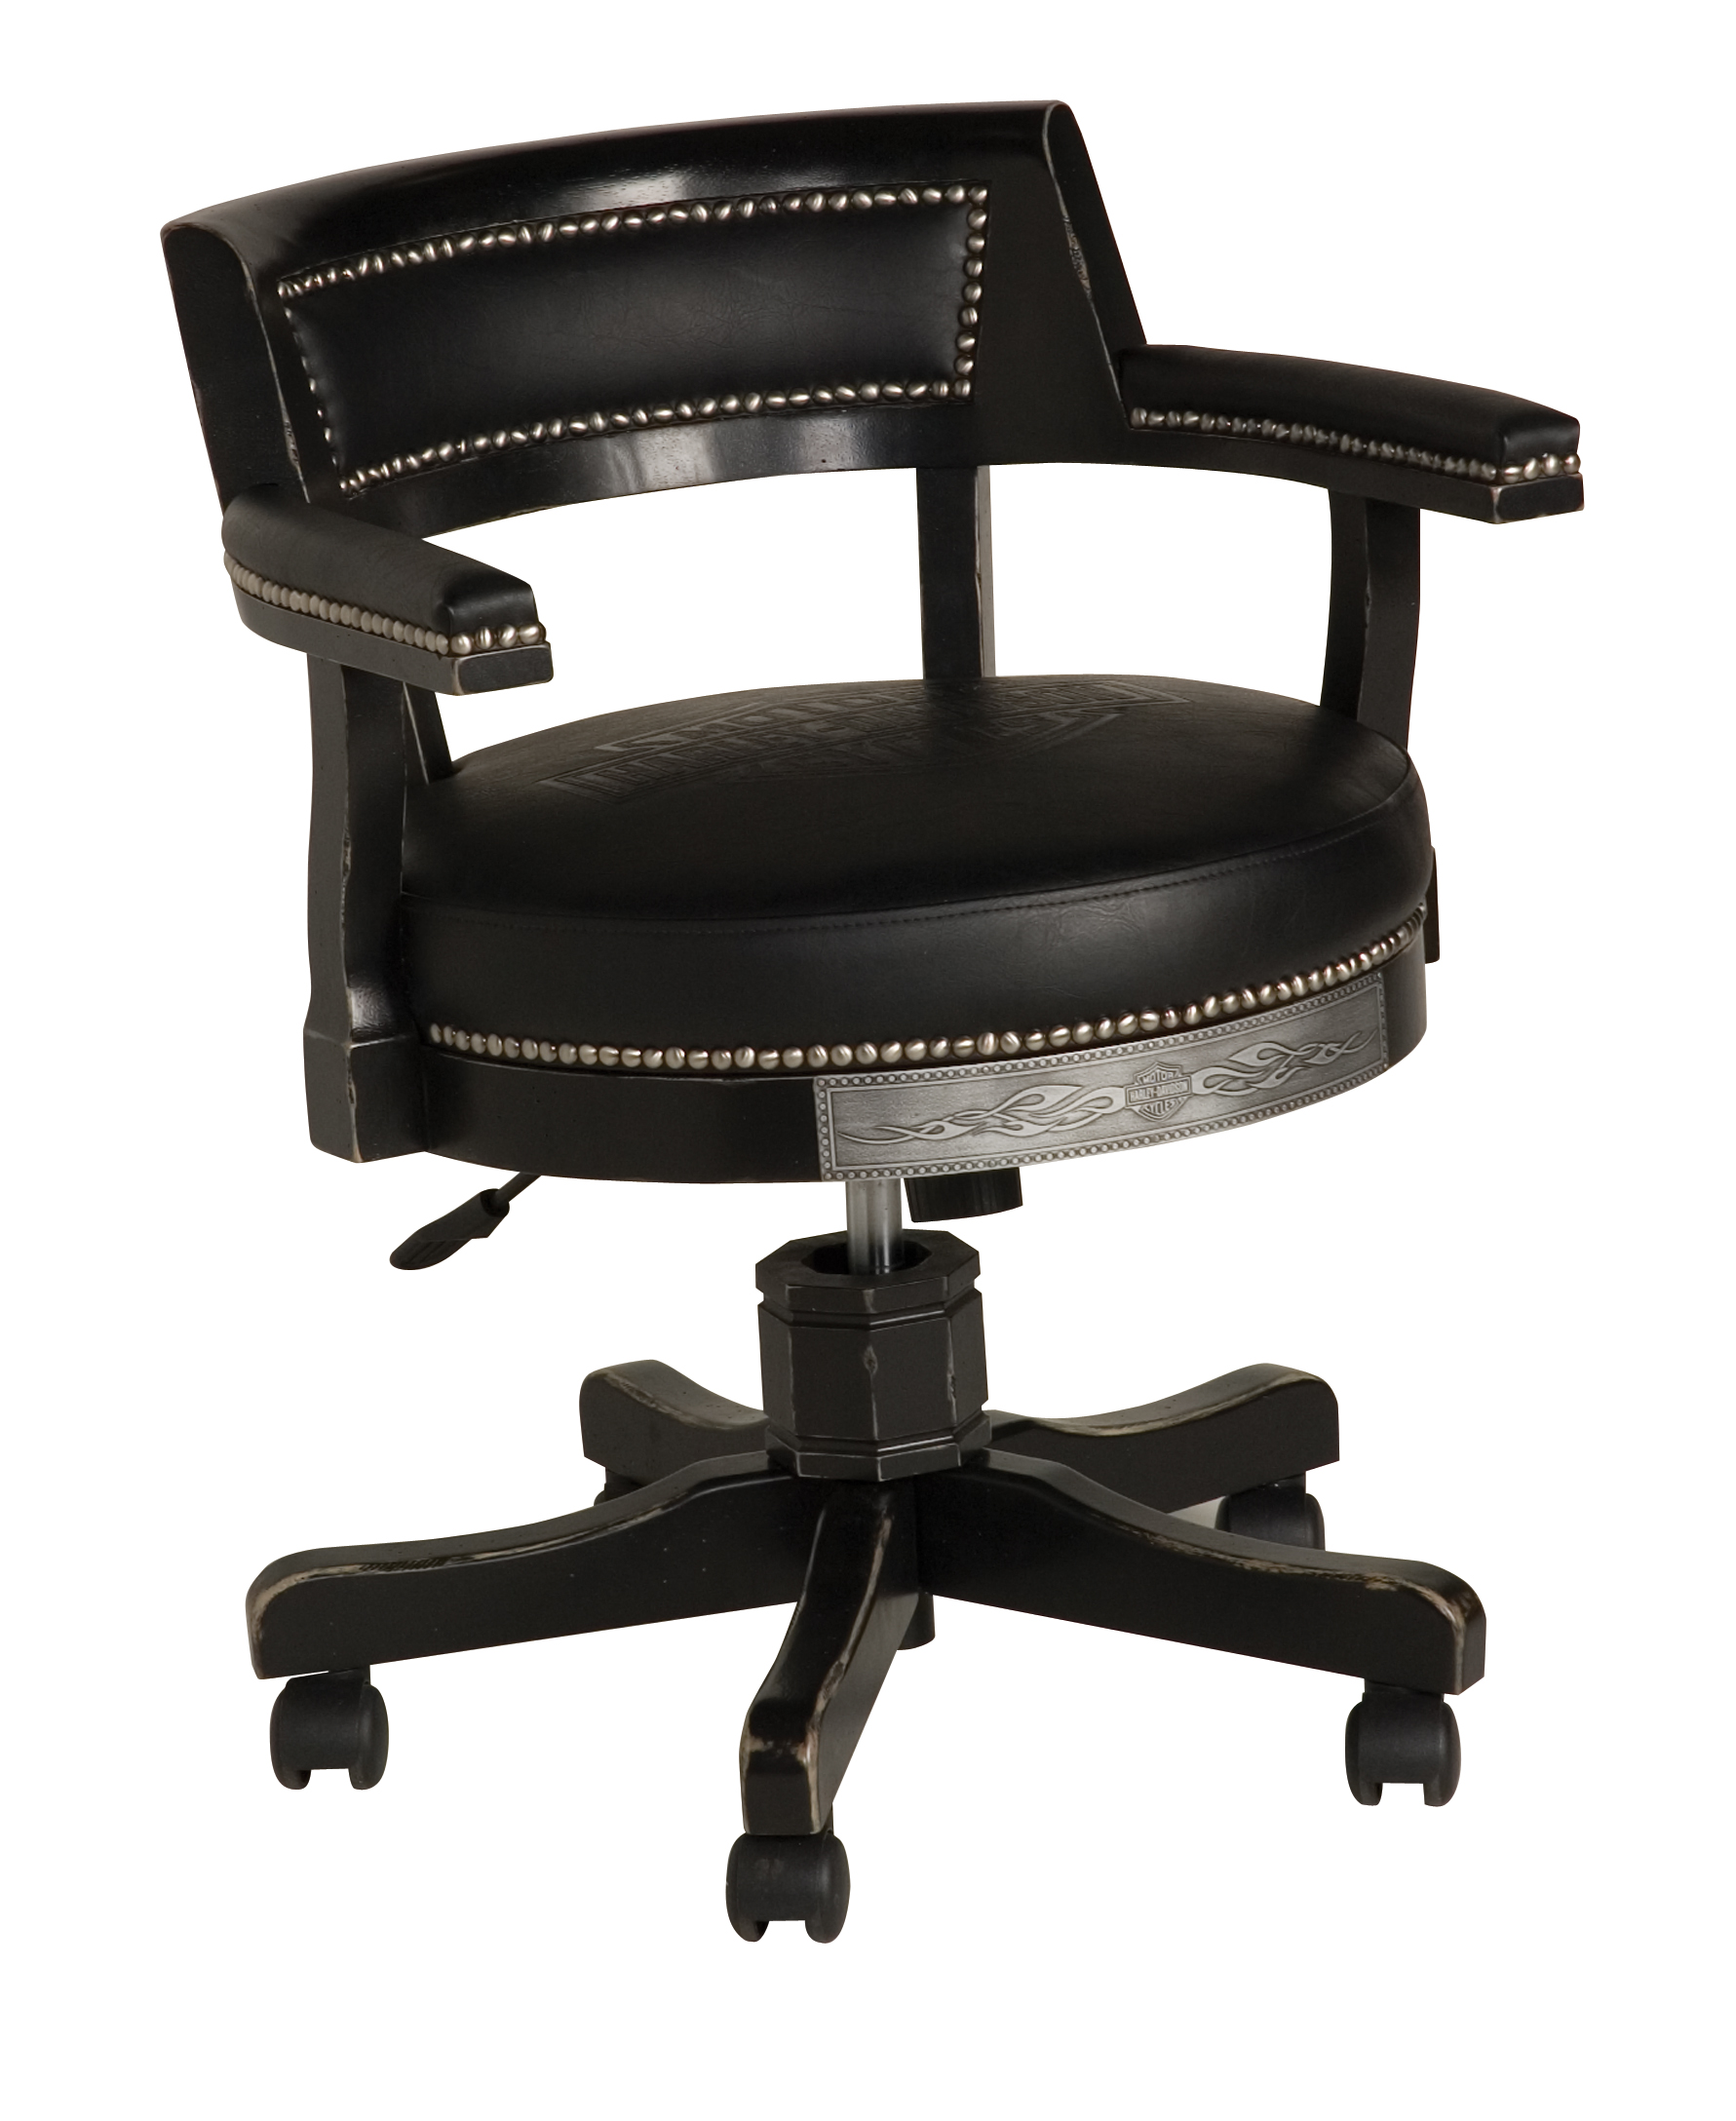 Harley-Davidson B&S Flames Poker Chair Vintage Black Finish HDL-13140-V